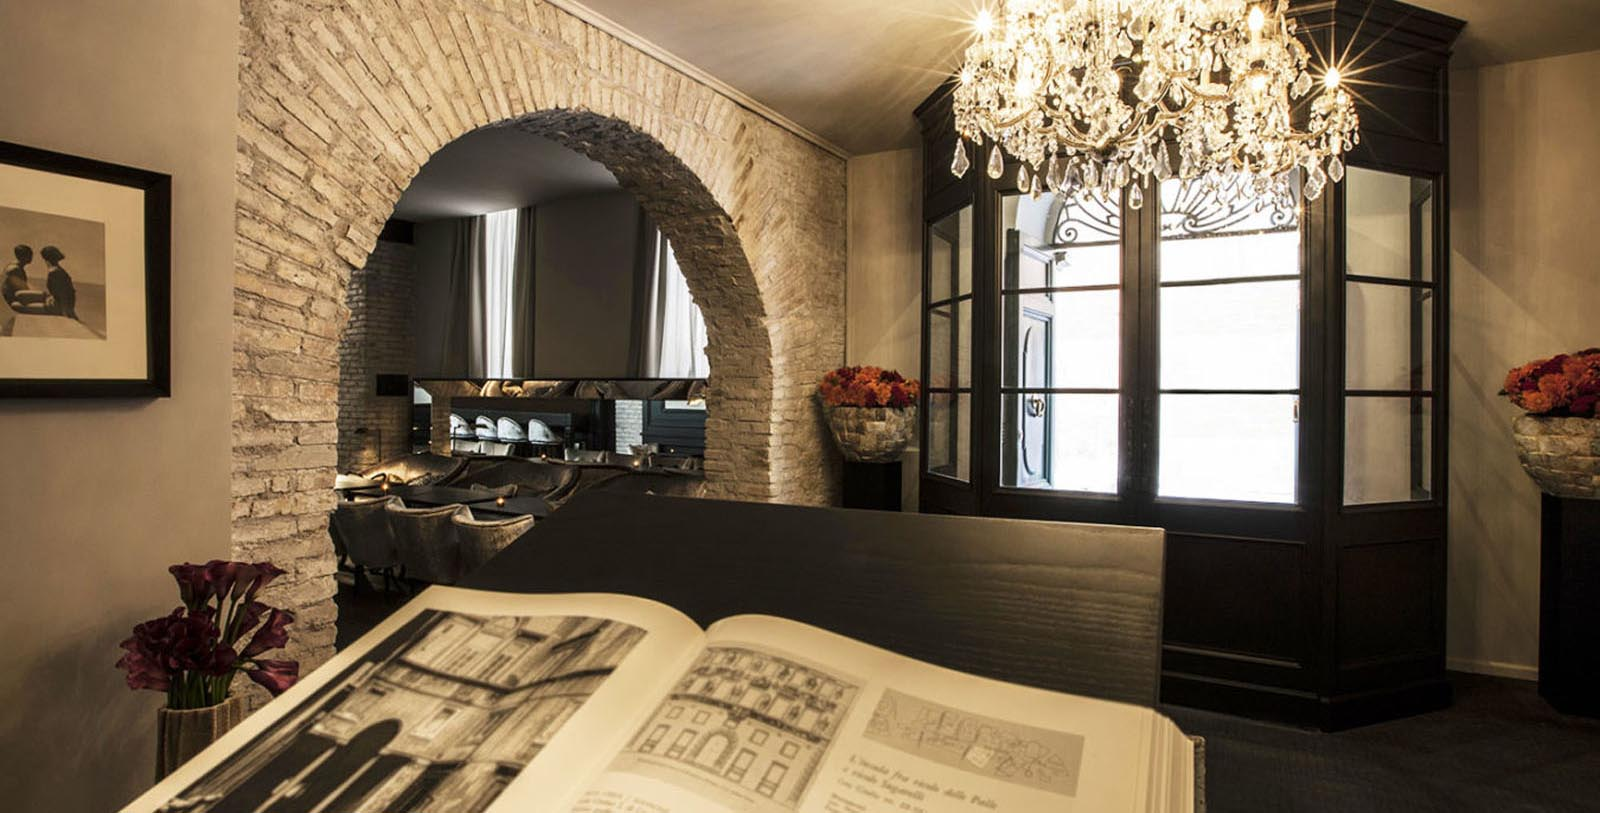 Image of the interior of the DOM Hotel, Rome Italy, Search